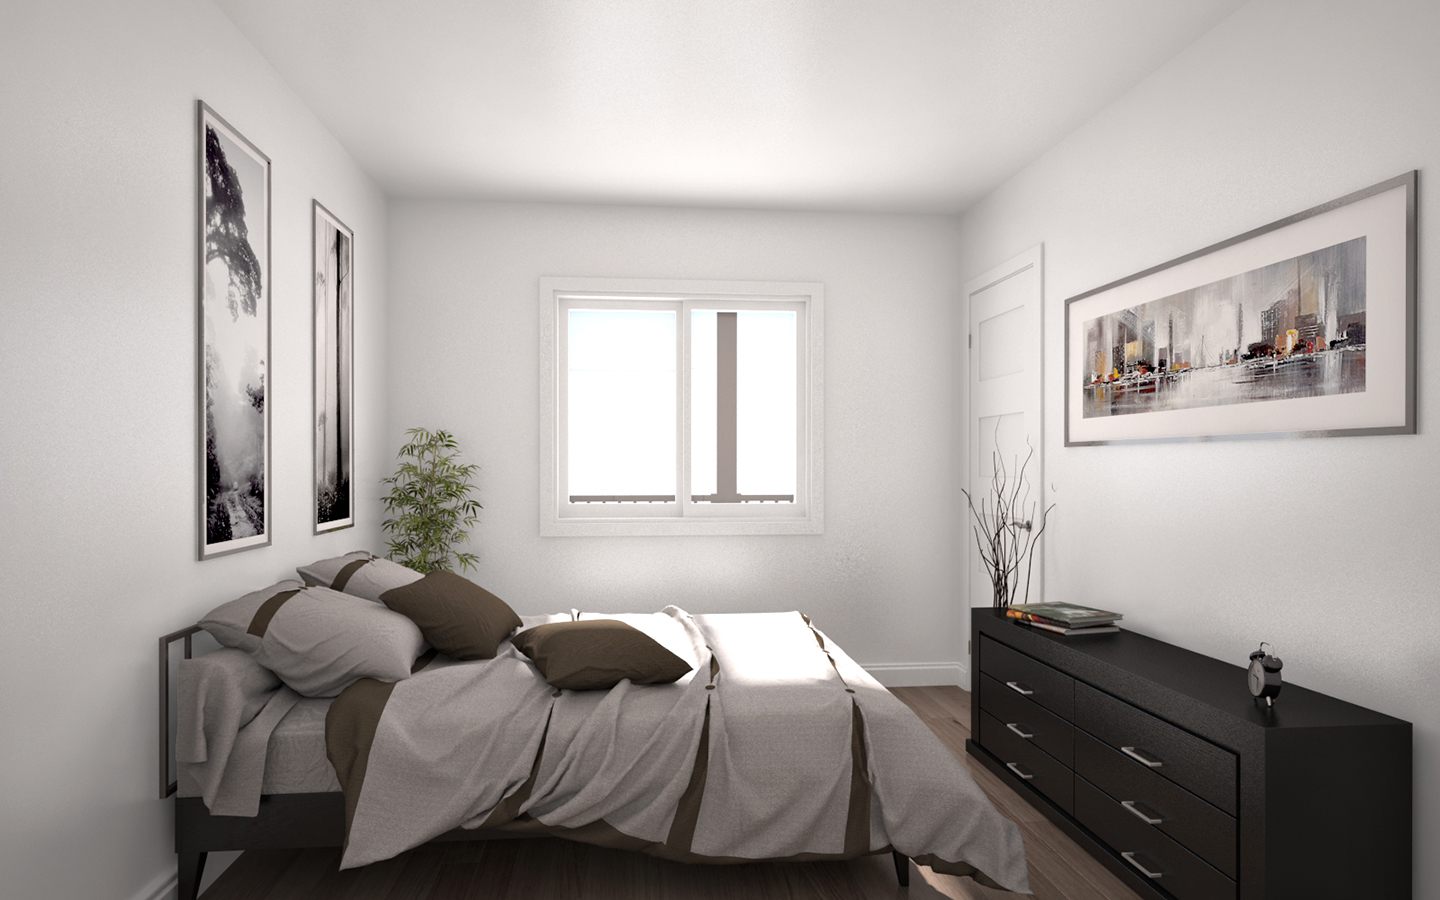 chambre condo illustration 3d photor aliste montr al